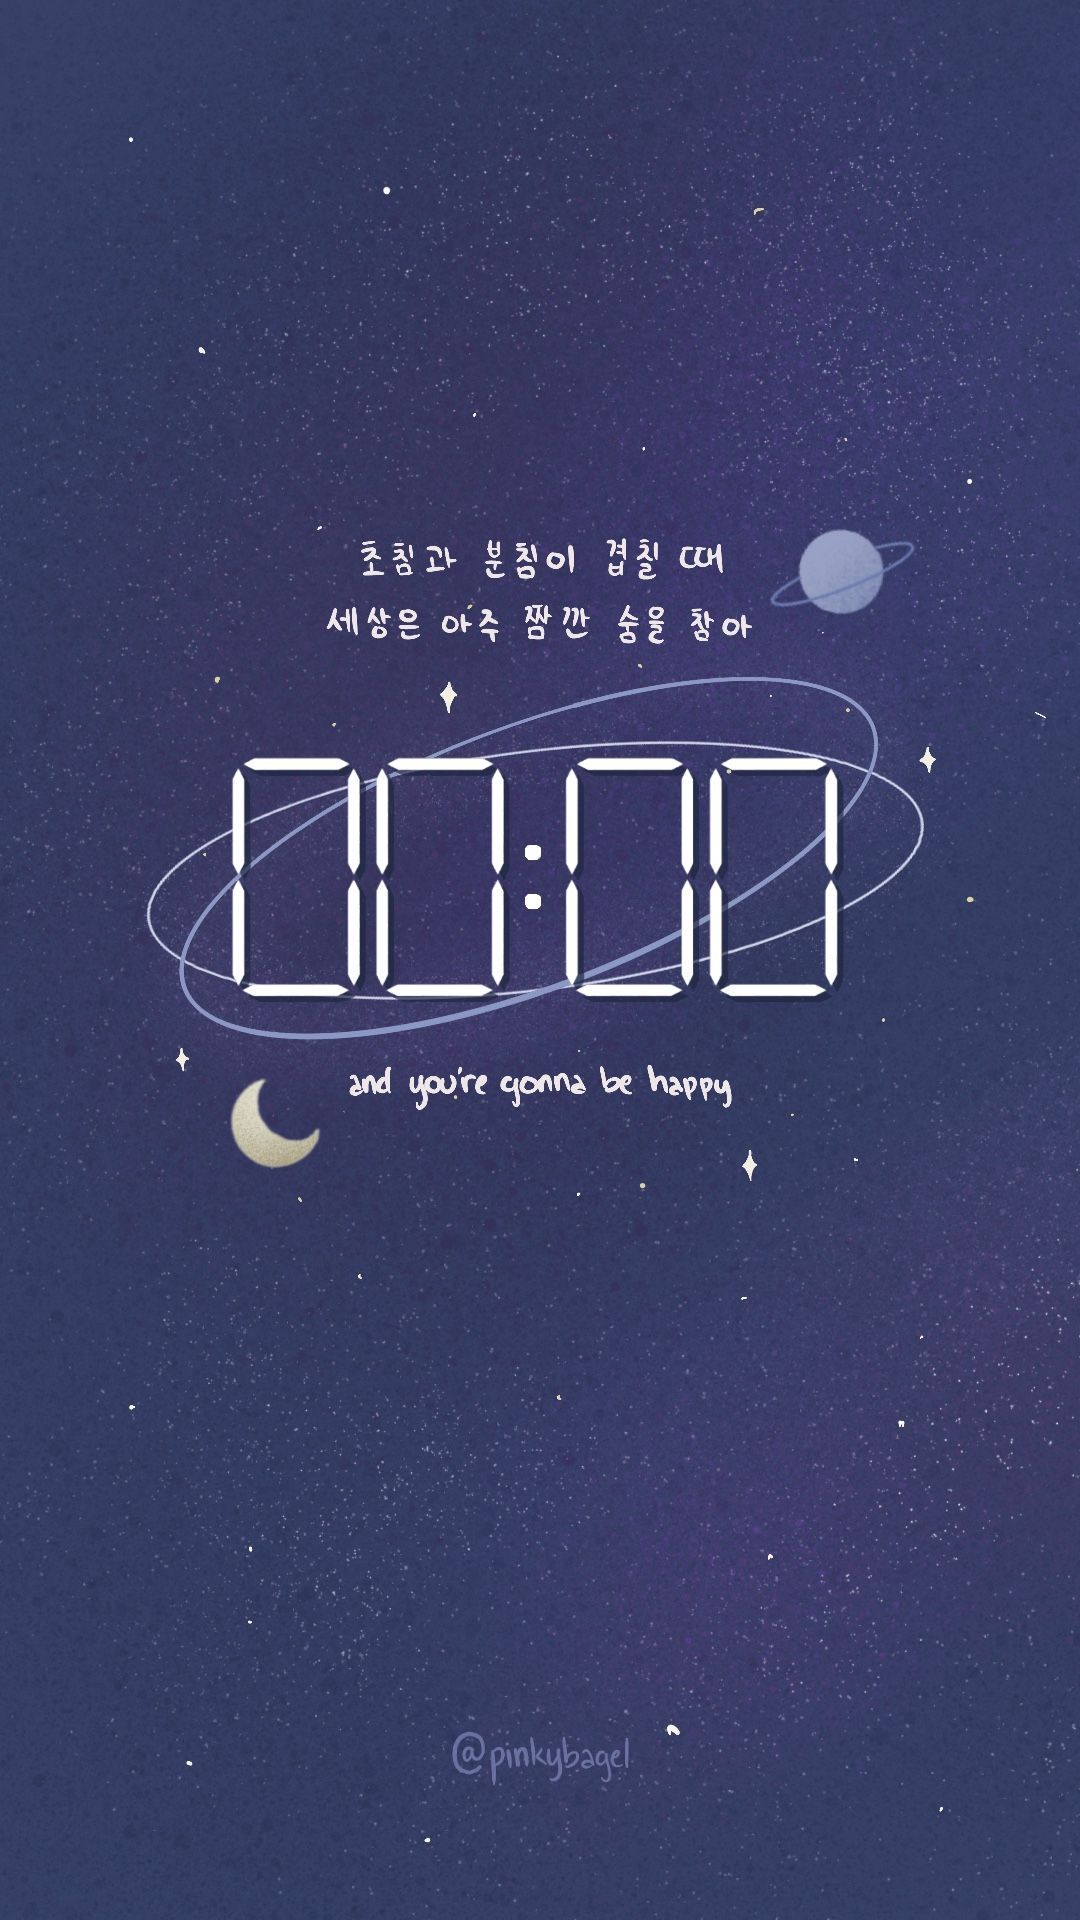 Bts Zero O Clock Phone Wallpaper Best Picture For Bts Wallpaper Iphone For Your Taste You Are Lo In 2020 Bts Wallpaper Lyrics Bts Lyrics Quotes Bts Song Lyrics